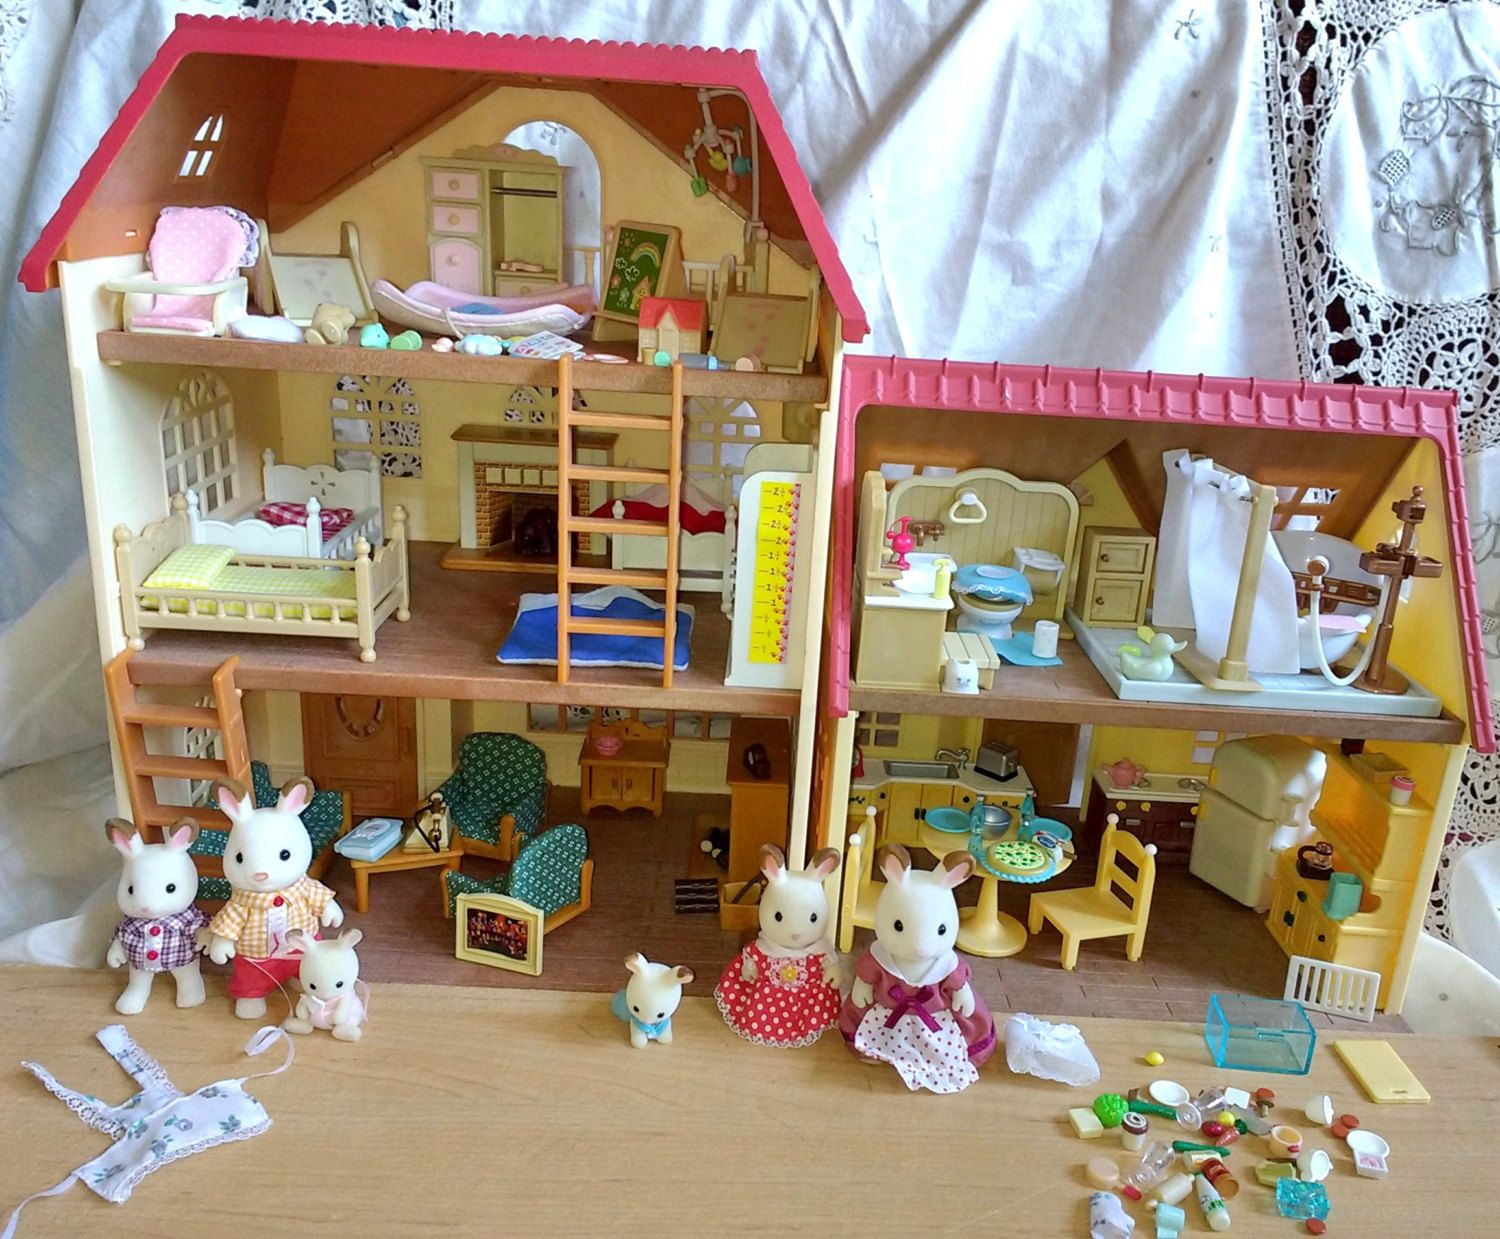 Vintage mapletown sylvanian families house and furniture w few figures calico critters by suburbantreasure on etsy